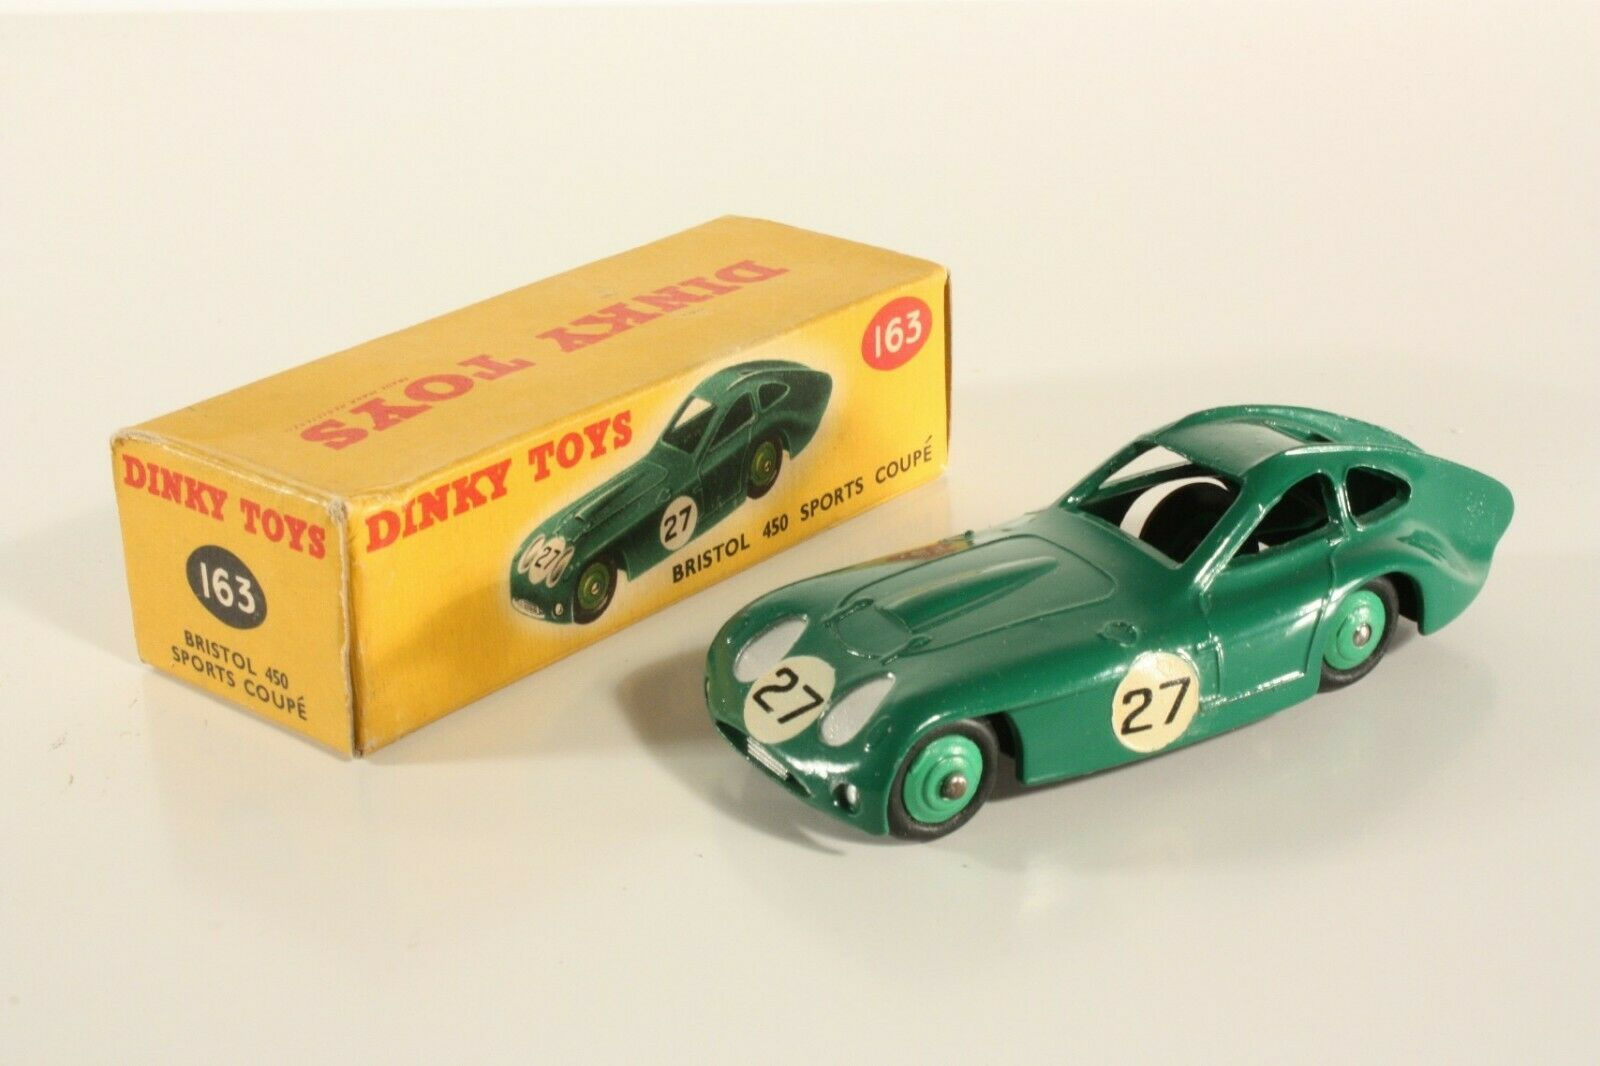 DINKY TOYS 163, BRISTOL 450 Sport  Coupé, Comme neuf in box  ab2267  réductions incroyables